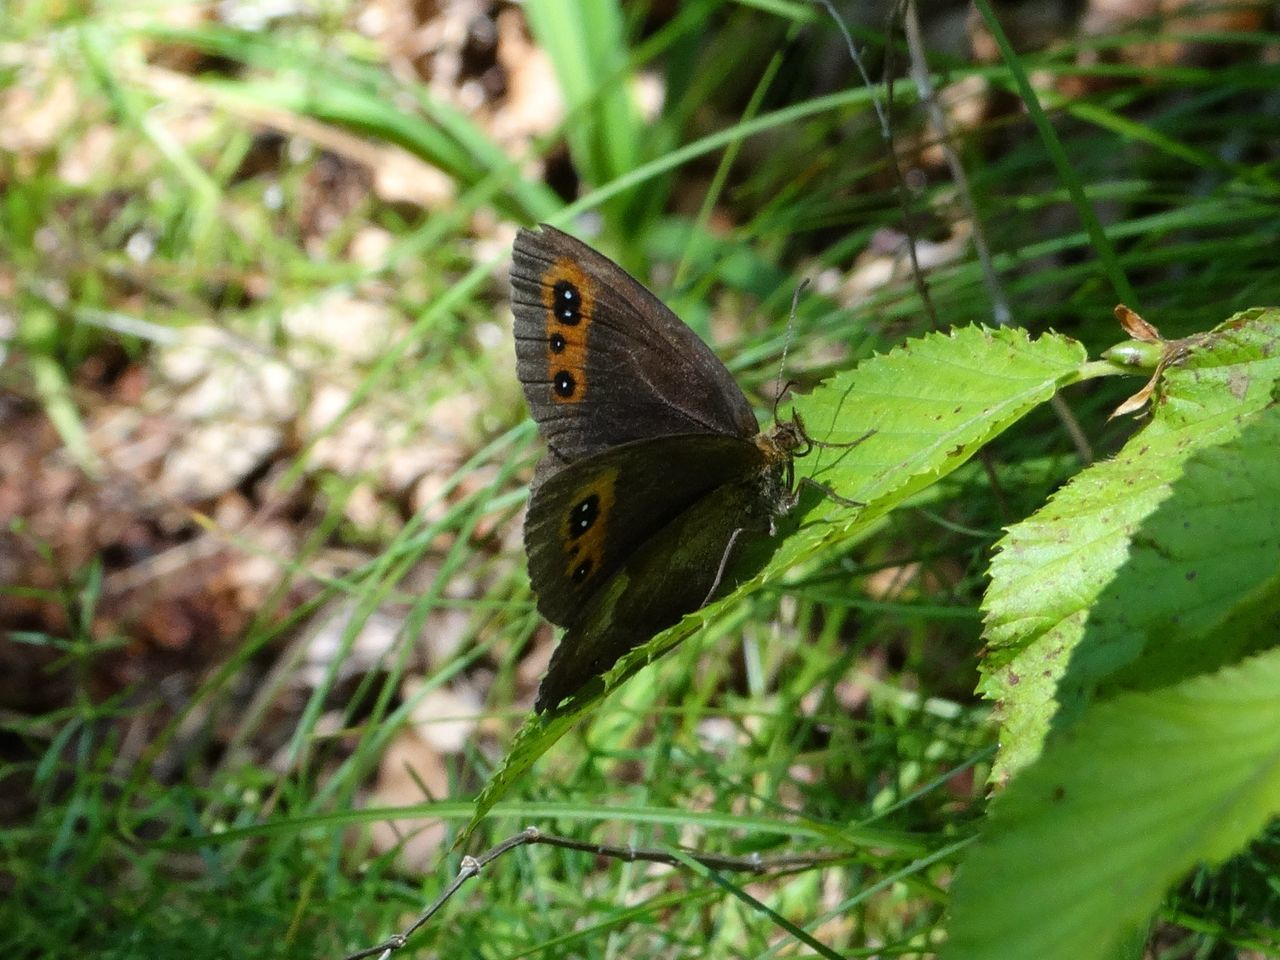 Animals In The Wild Arran Brown Nature Scotch Argus Butterfly Sunlight Animal Animal Themes Animal Wildlife Animals In The Wild Beauty In Nature Butterfly Butterfly - Insect Close-up Day Green Color Growth Insect Leaf Nature No People One Animal Outdoors Perching Plant Satyrinae